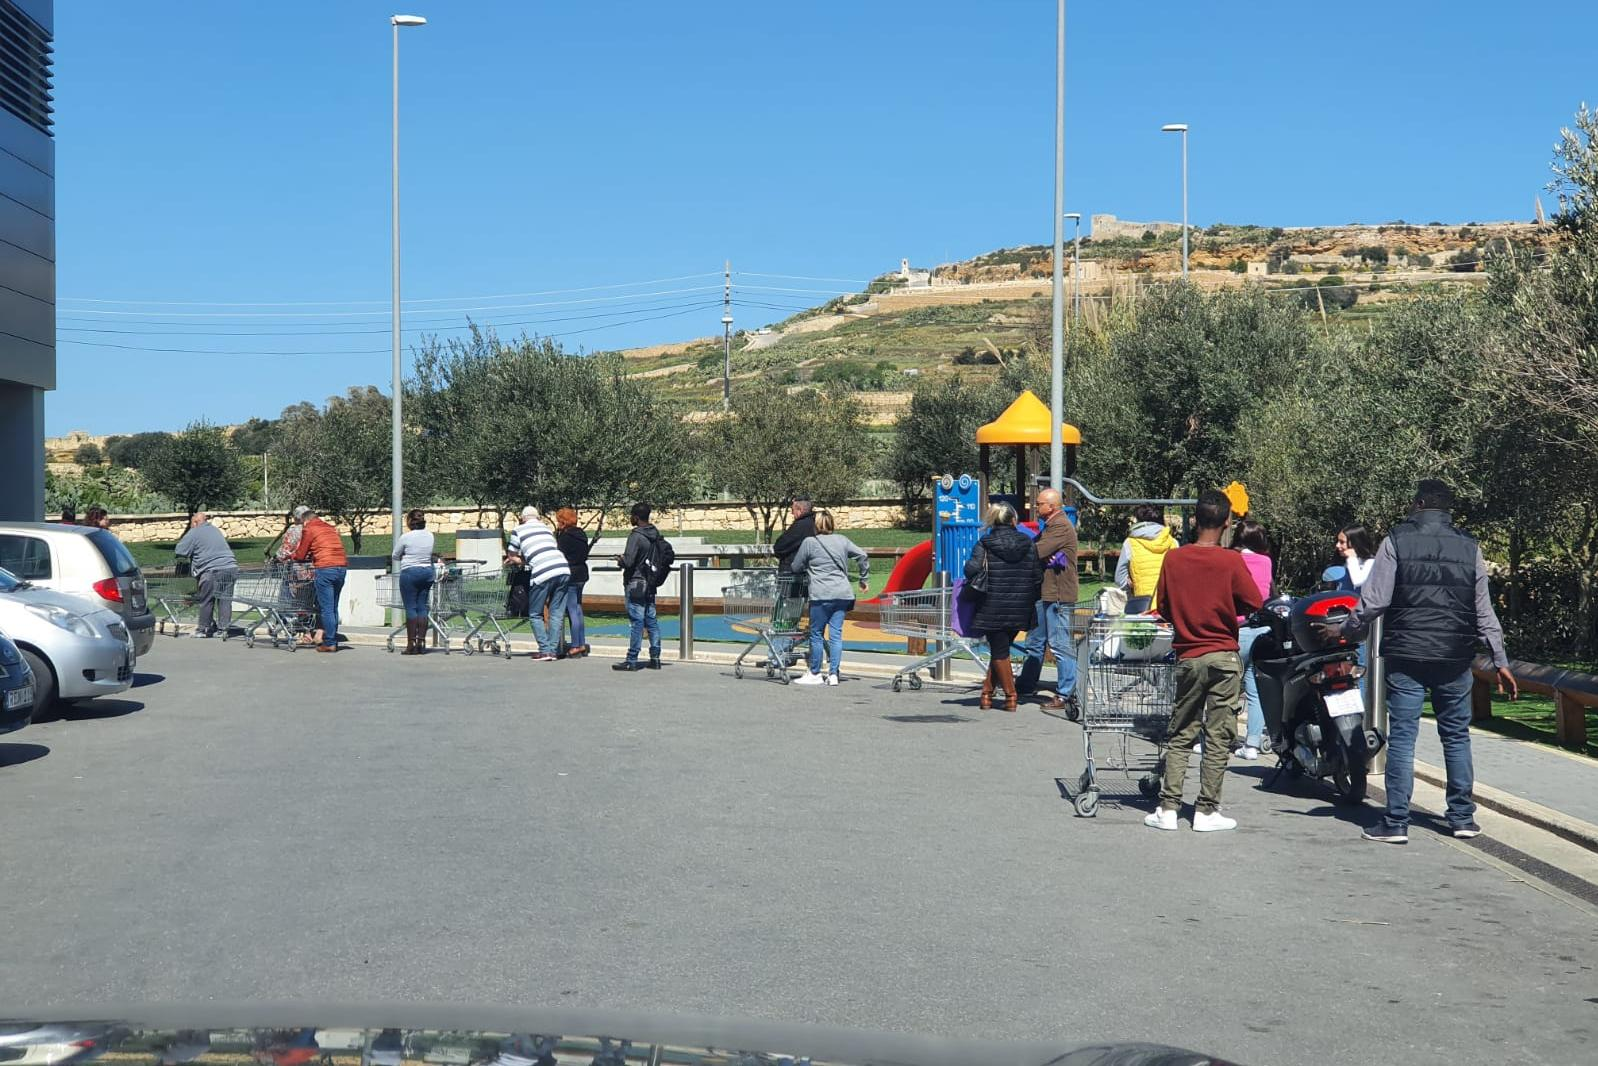 Queues forming outside a Lidl store in Gozo on Saturday.